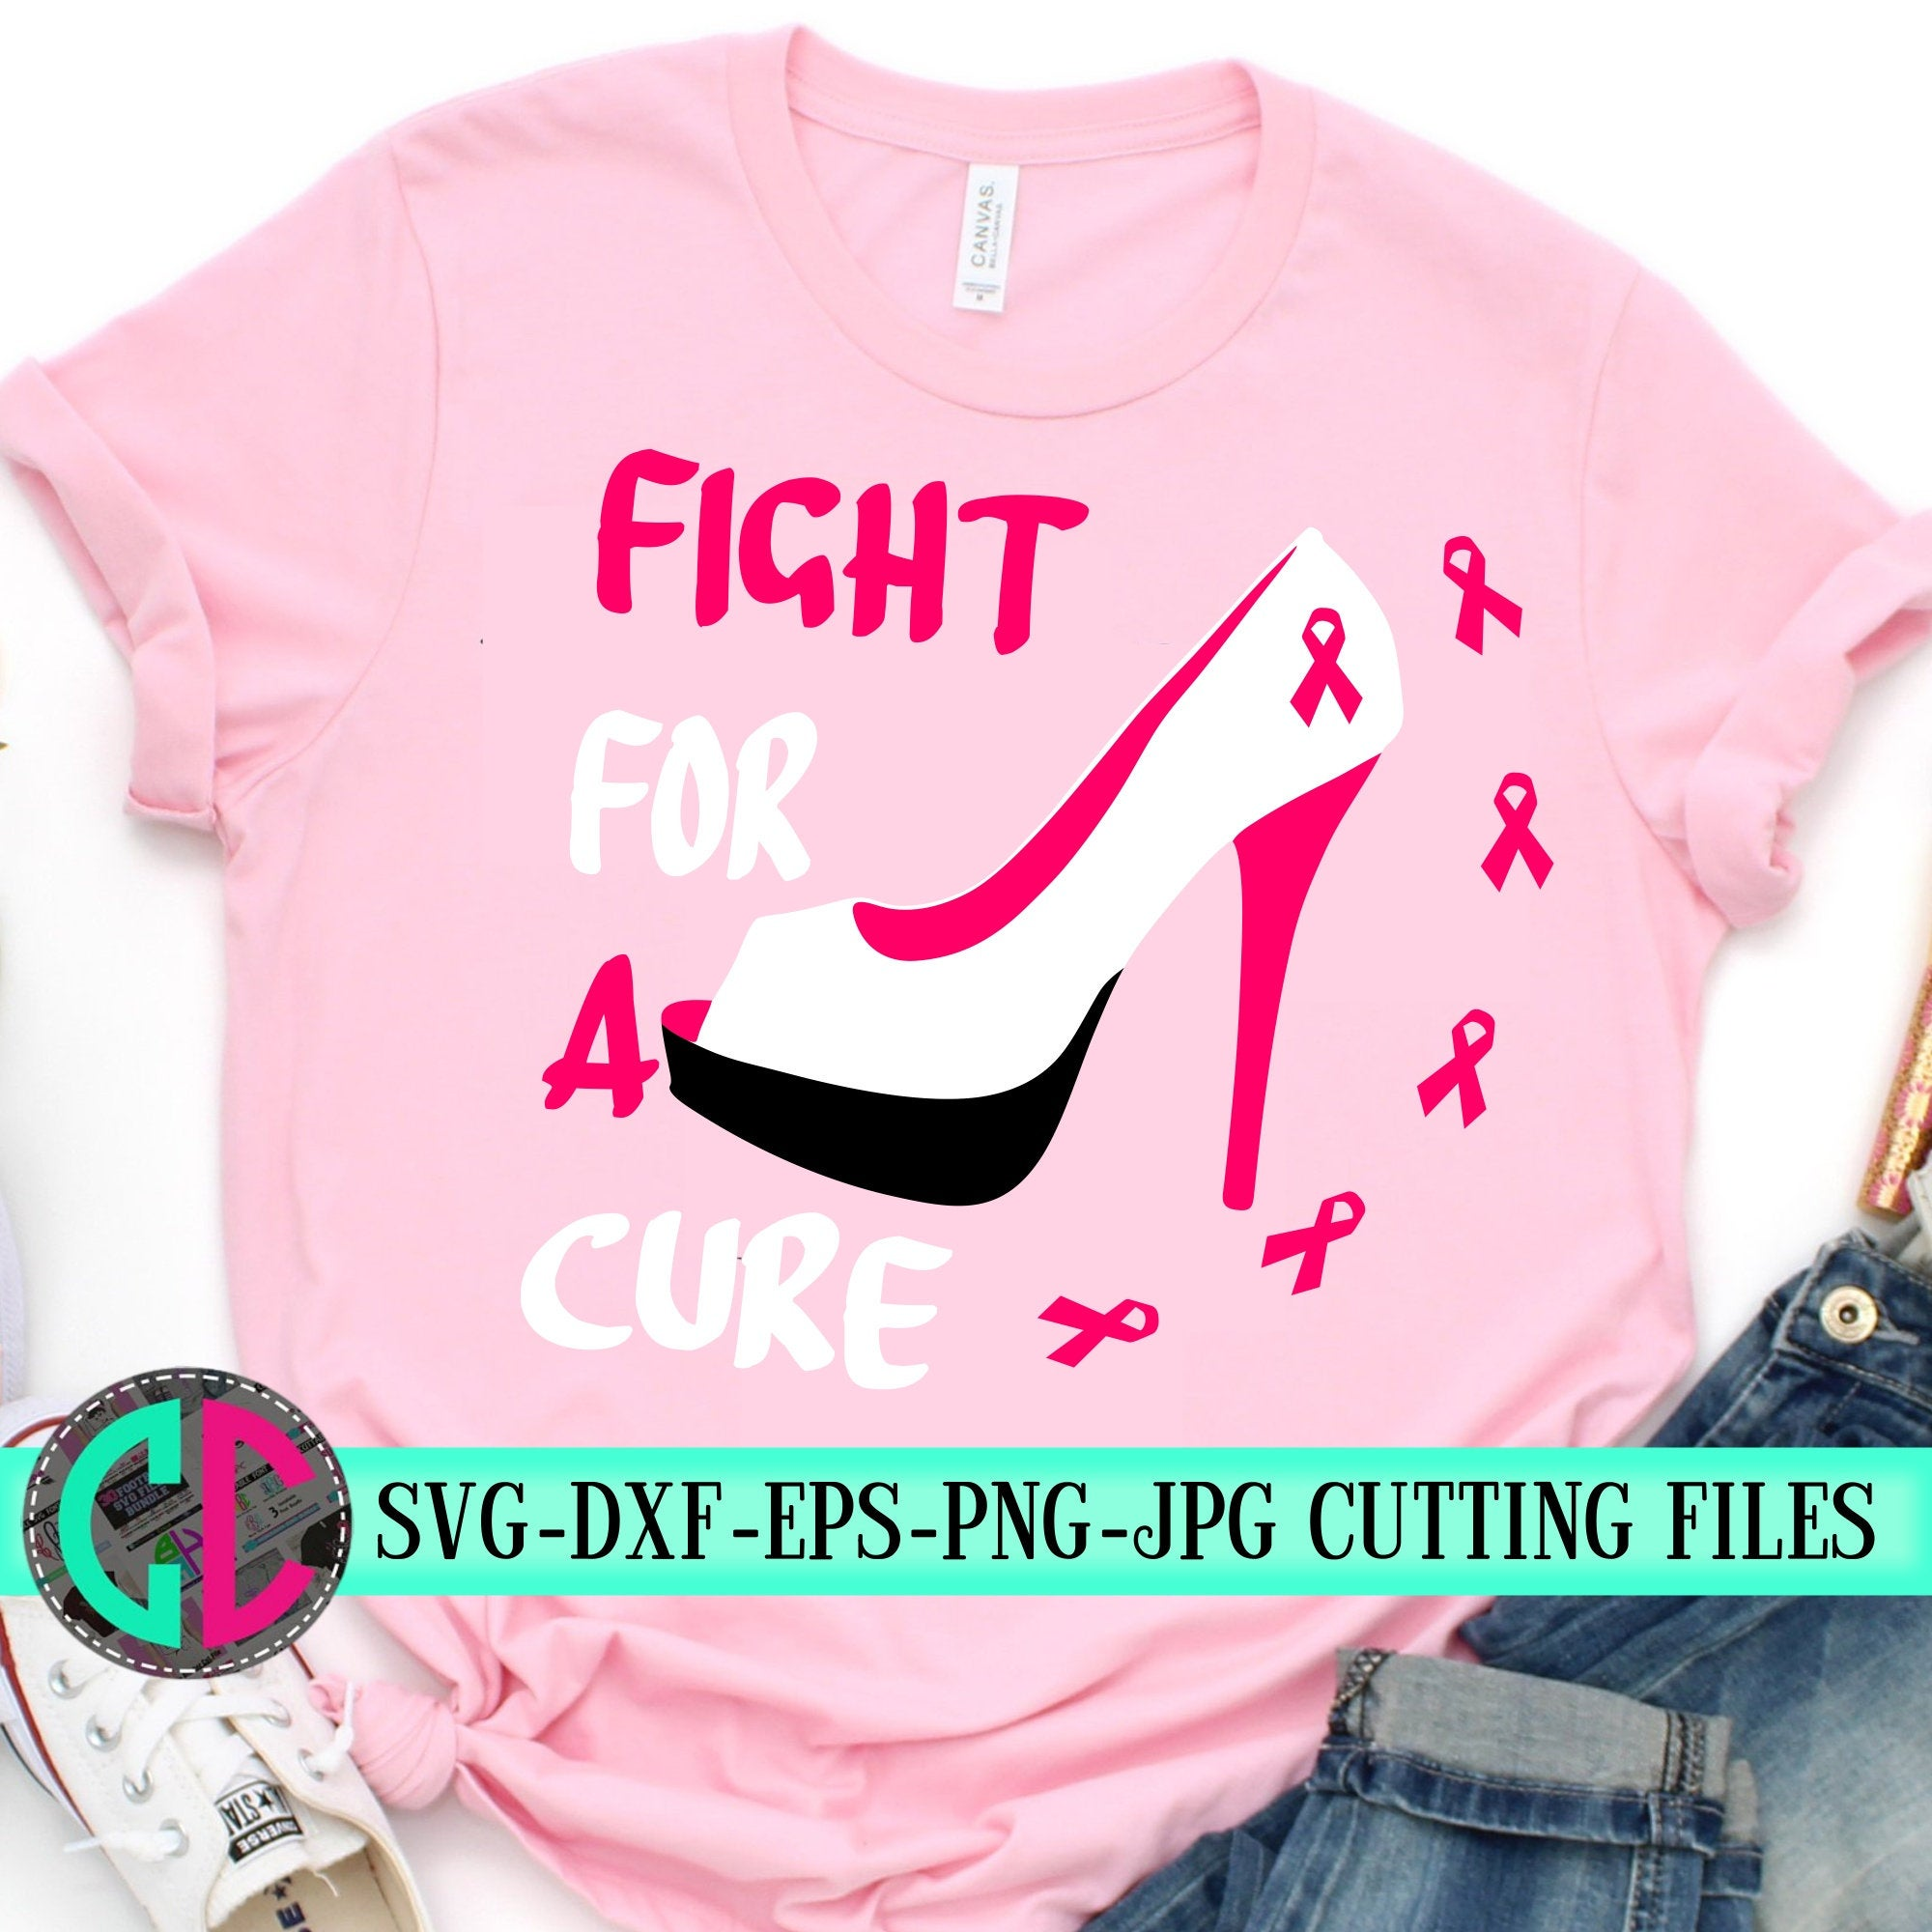 Fight-for-a-cure-svgbreast-cancer-svgheels-svgcancer-survivor-svgrelay-for-life-svgbreast-cancersilhouettetshirtcameosvg-for-cricut-5e2203d0